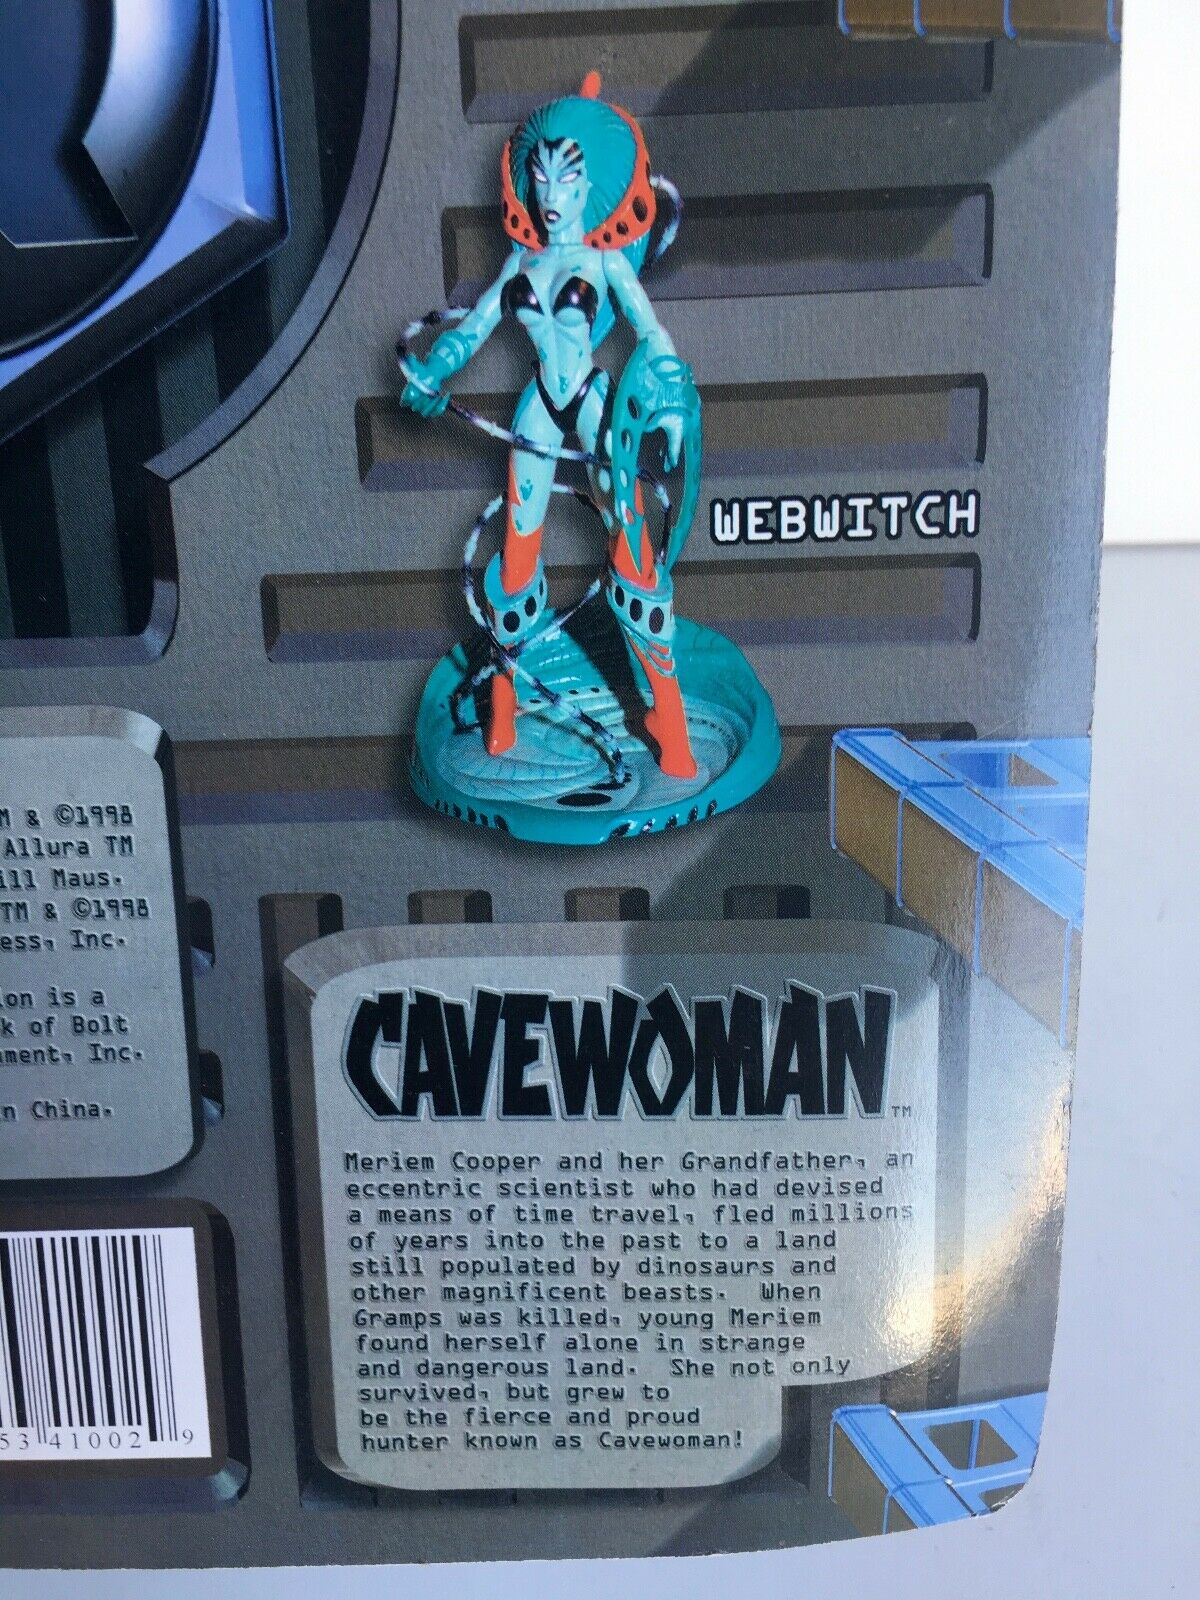 CAVEWOMAN bluee Variant Variant Variant Super Rare  Rendition Comics Budd Root AF-2 d095be